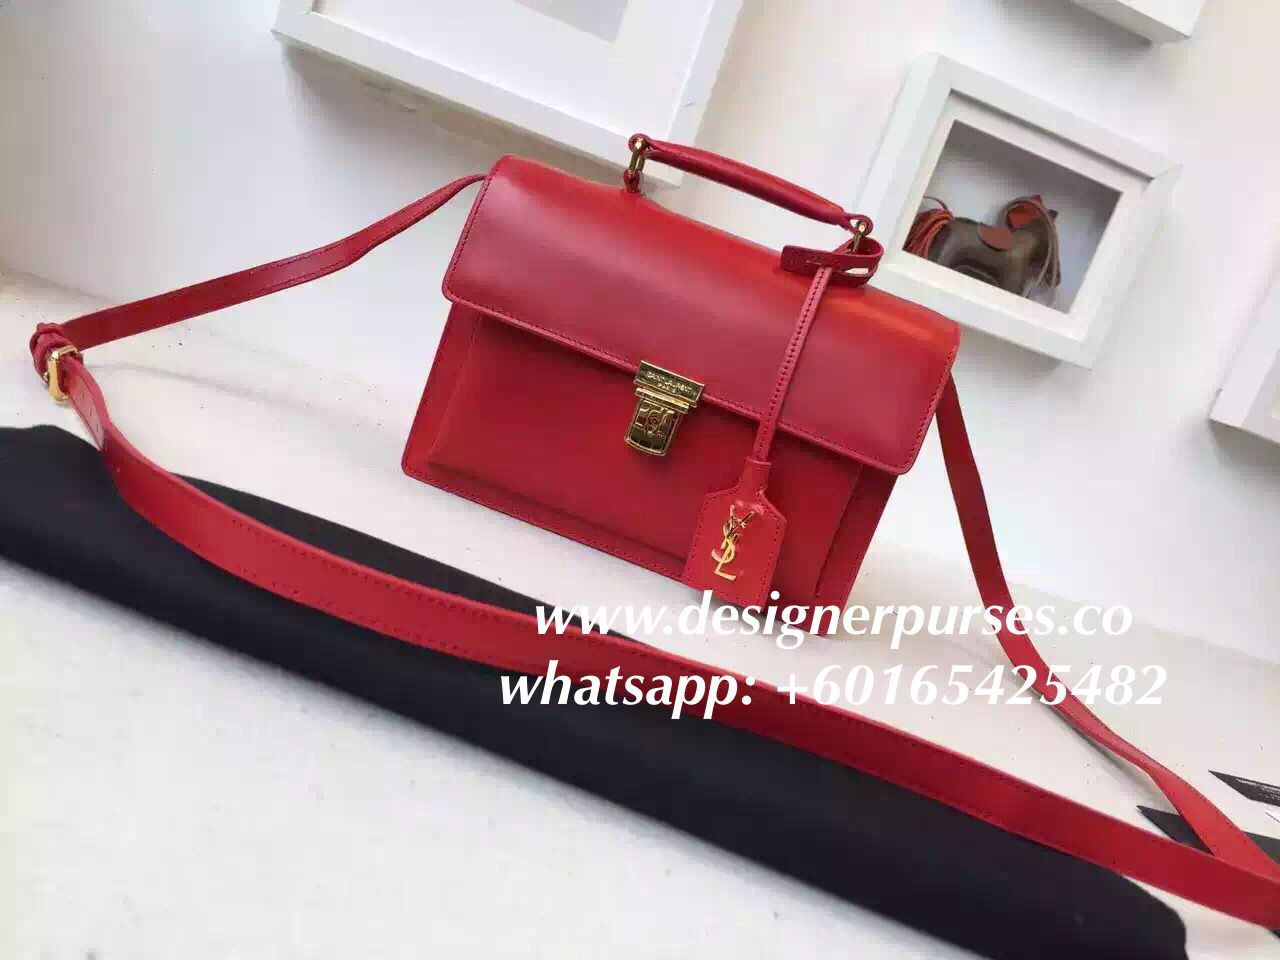 68935072daf1 YSL high school bag #louisvuitton #Prada #Hermes #chanel #Burberry #dior